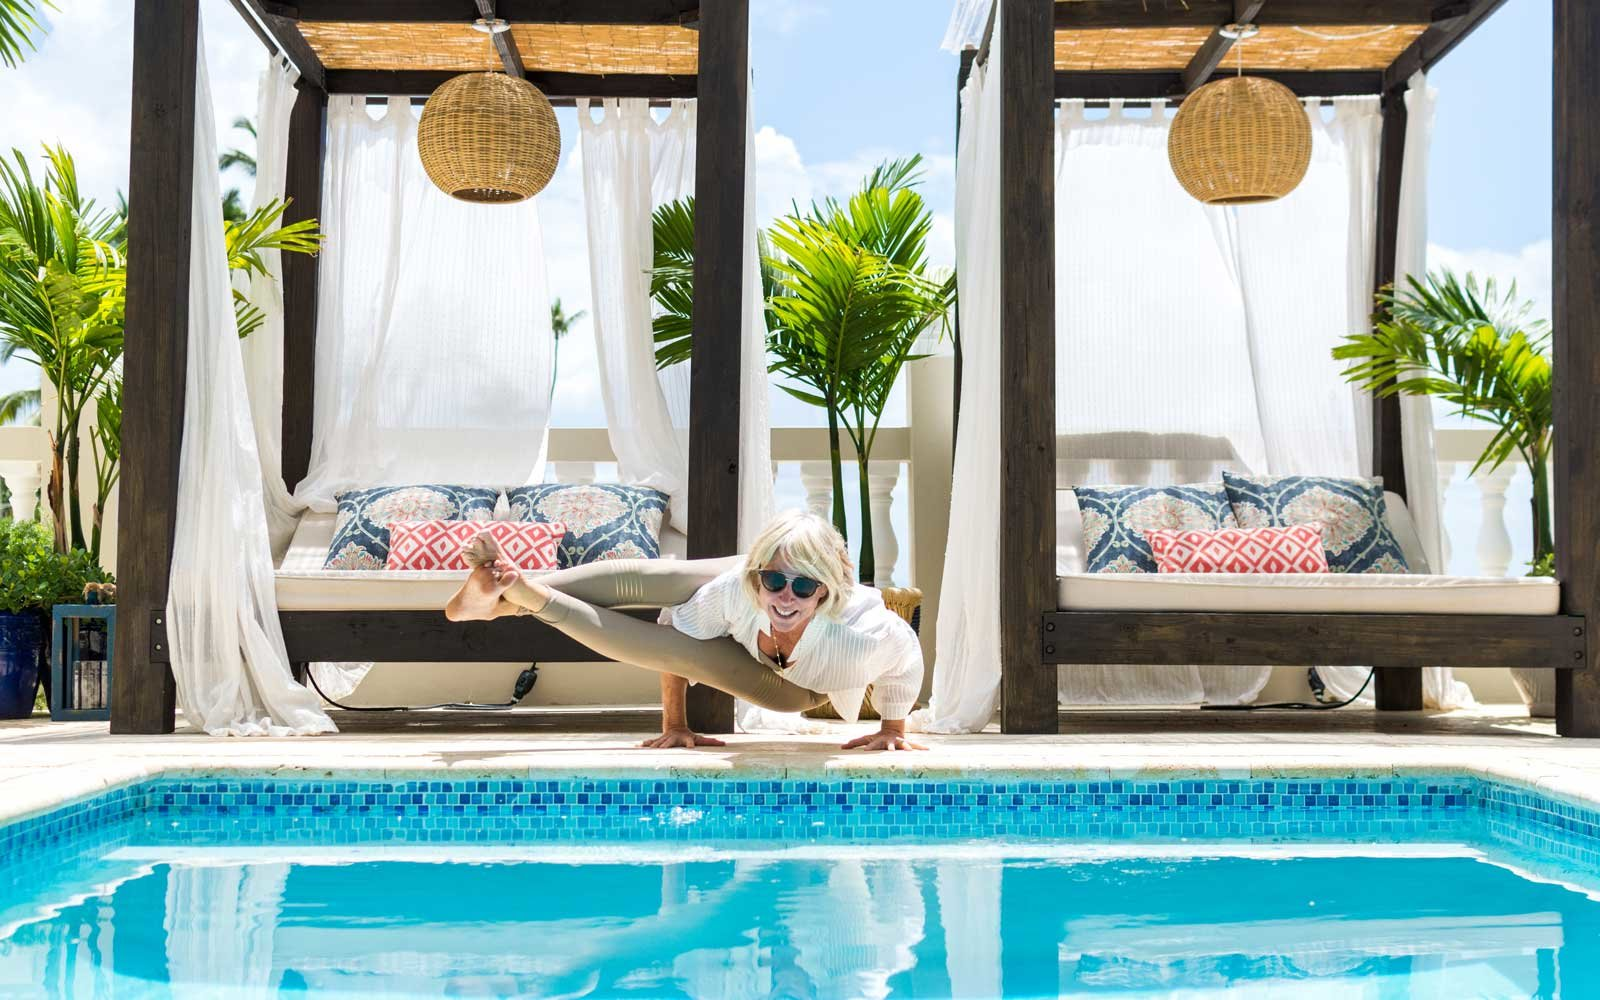 Yoga by the pool at Tres Sirenas hotel in Puerto Rico